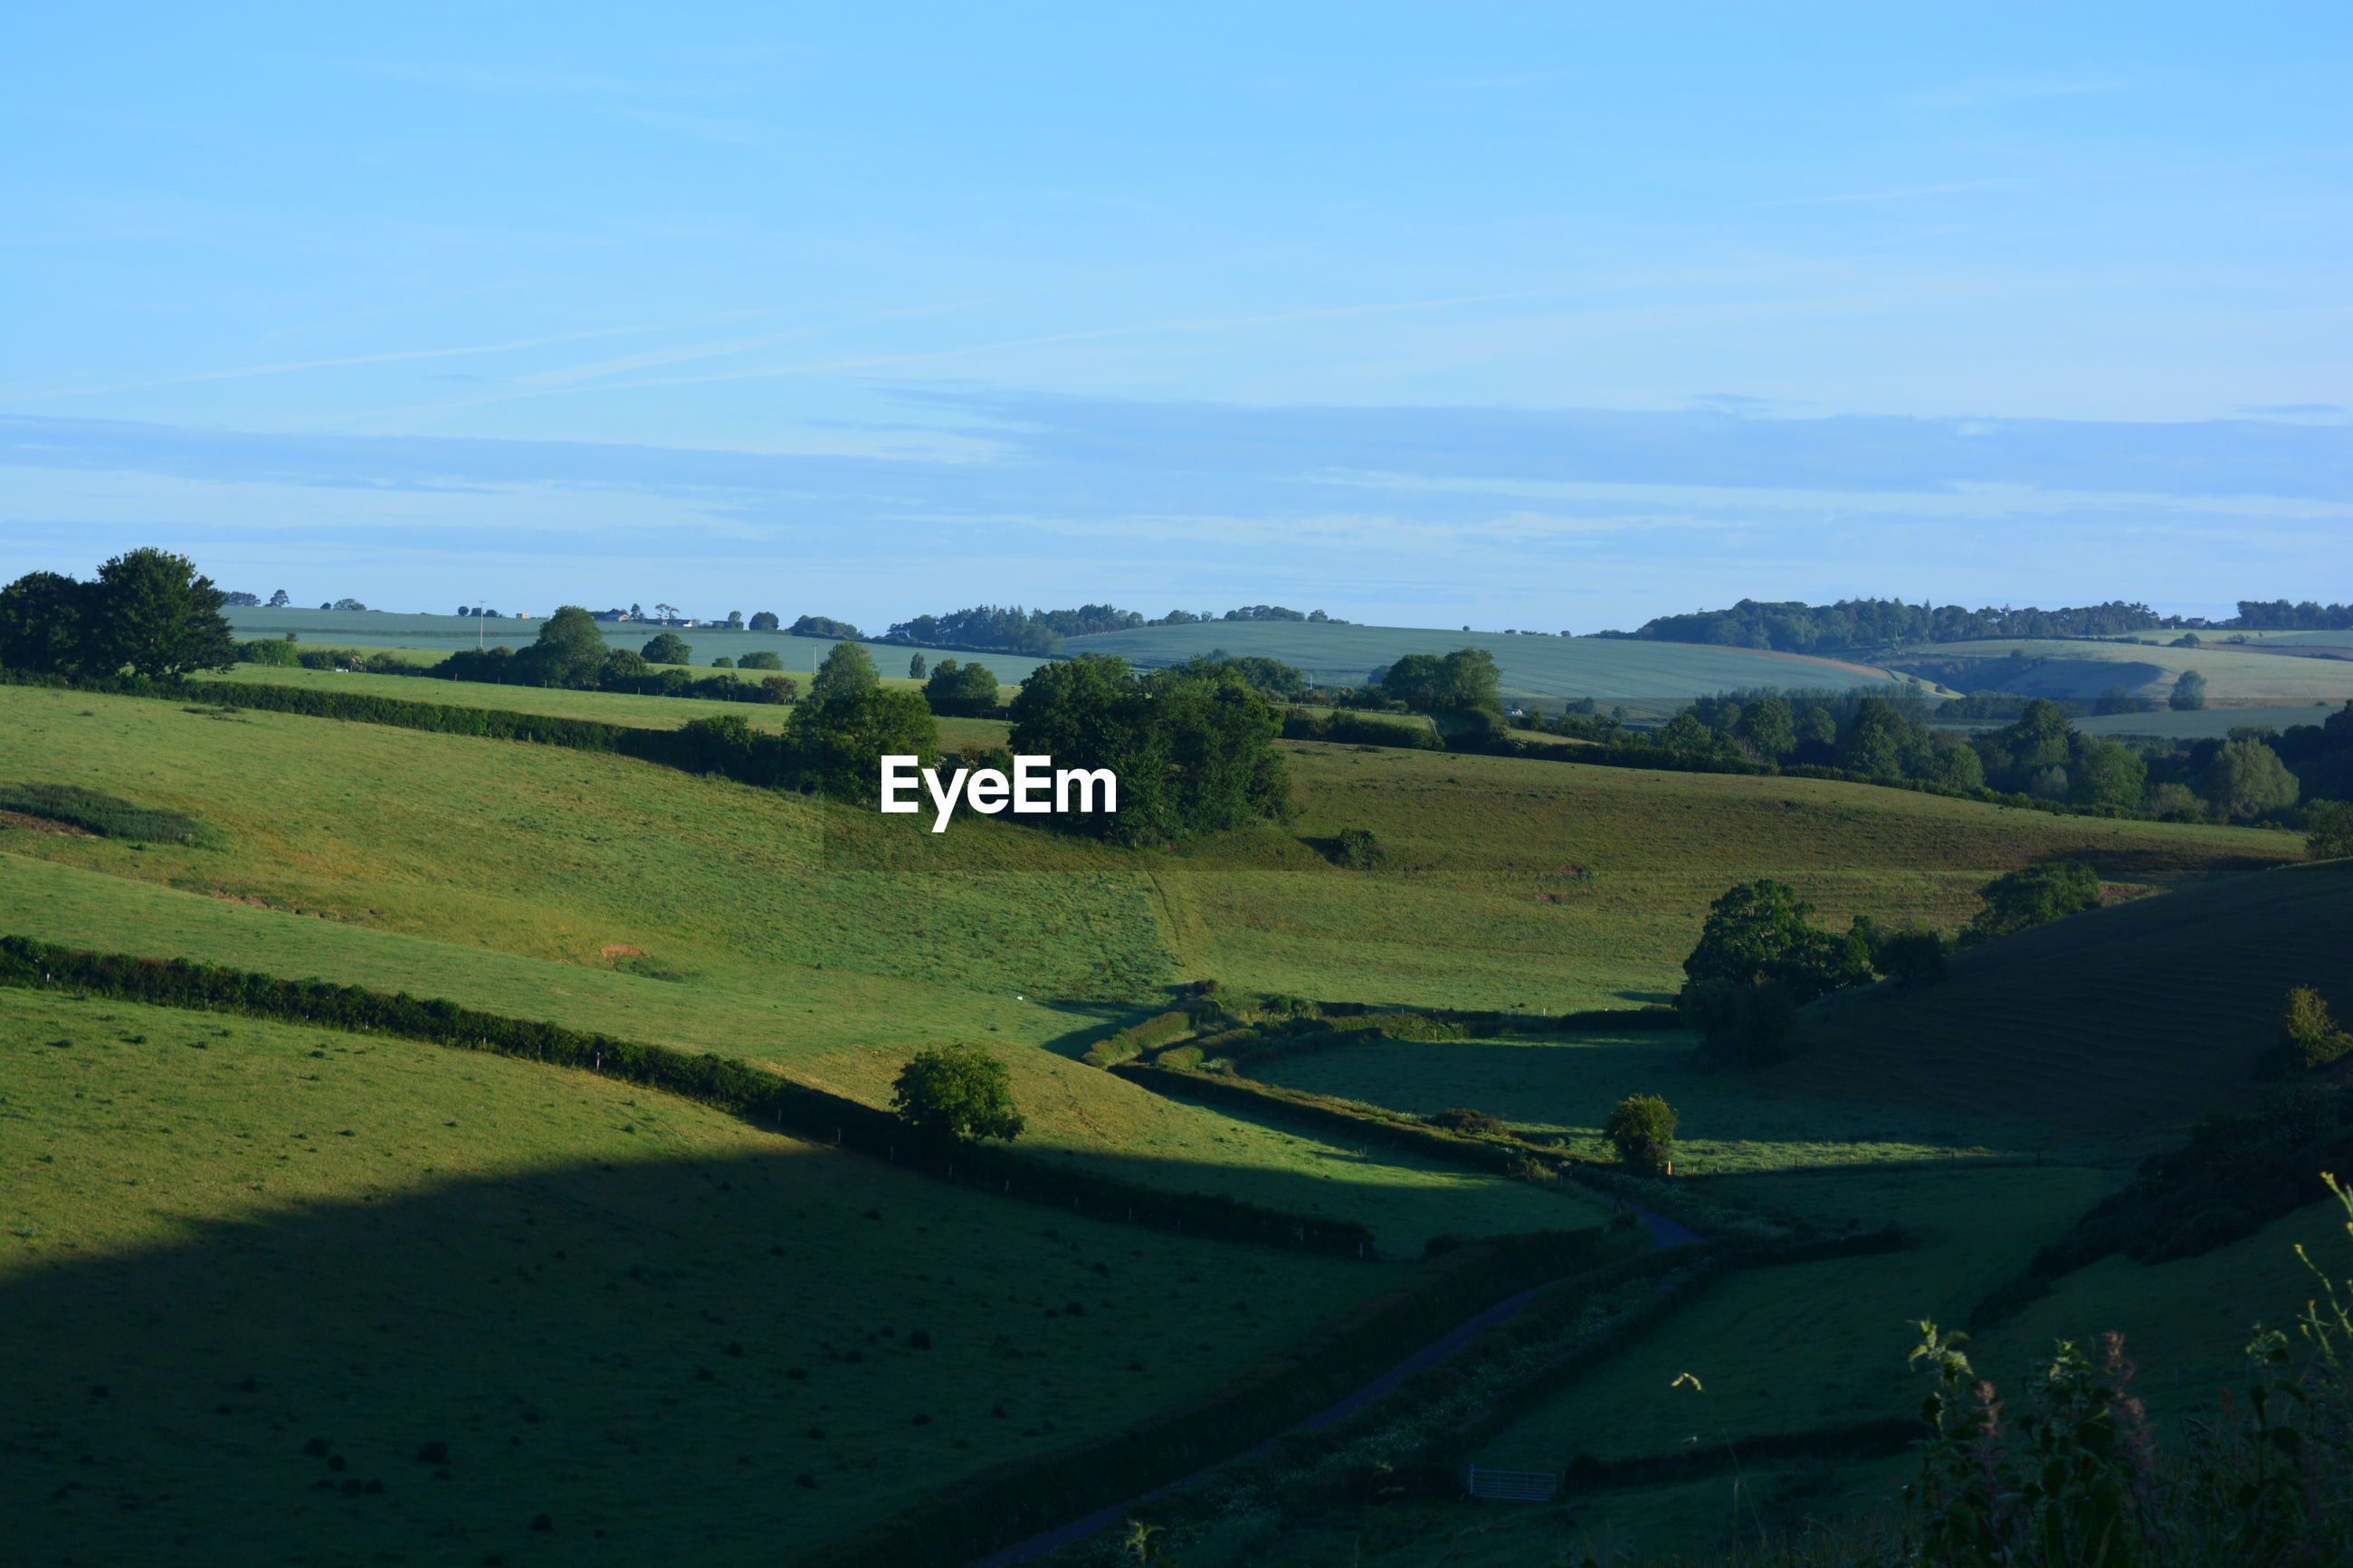 Panoramic view in summer, from oborne towards hamlet of poyntington, sherborne, dorset, england